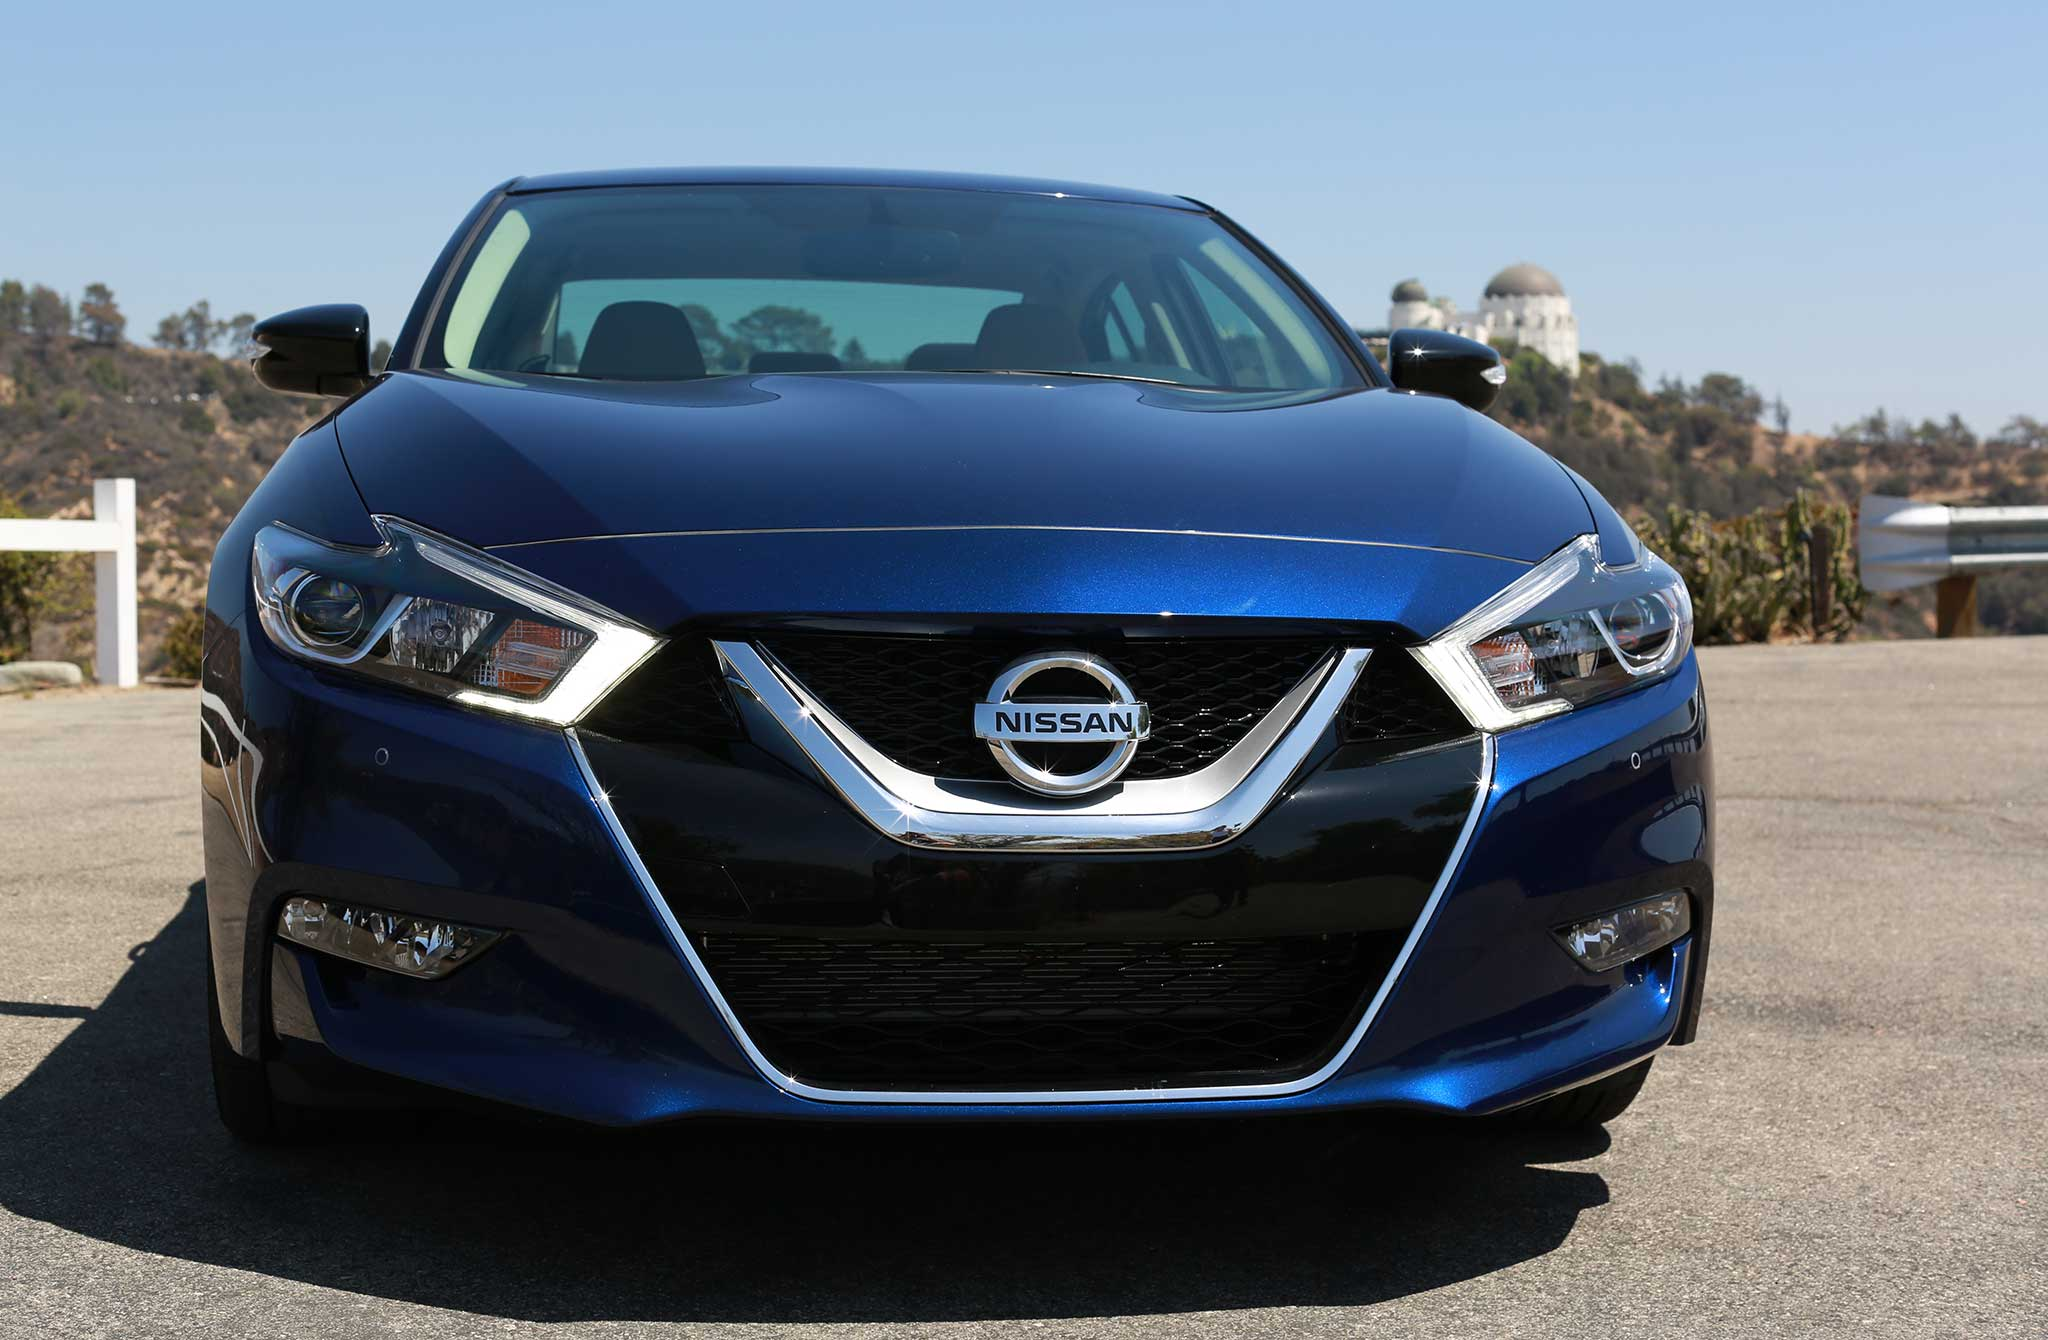 005 2016 nissan maxima front grill